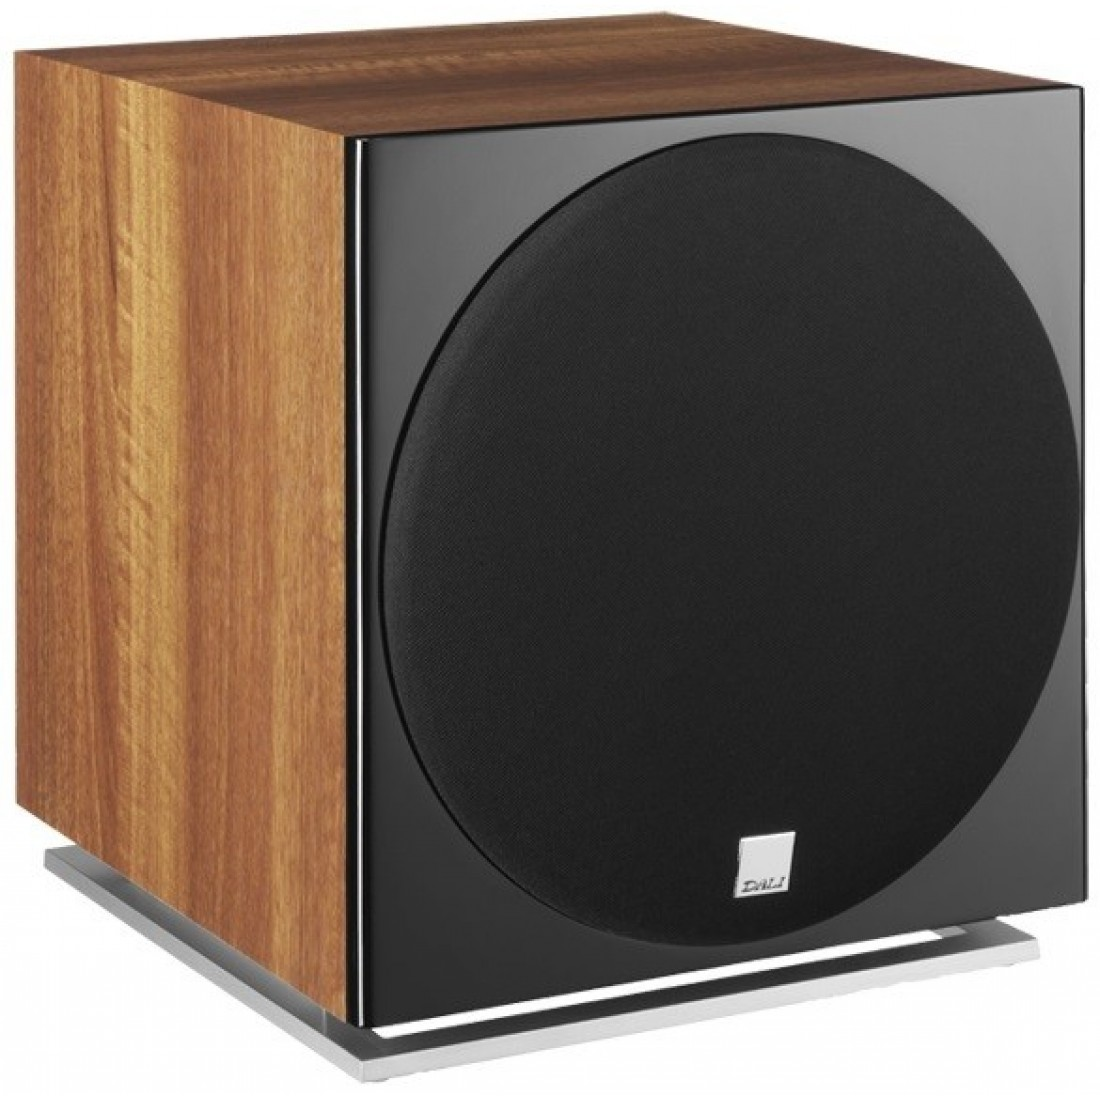 dali sub e9f subwoofer review